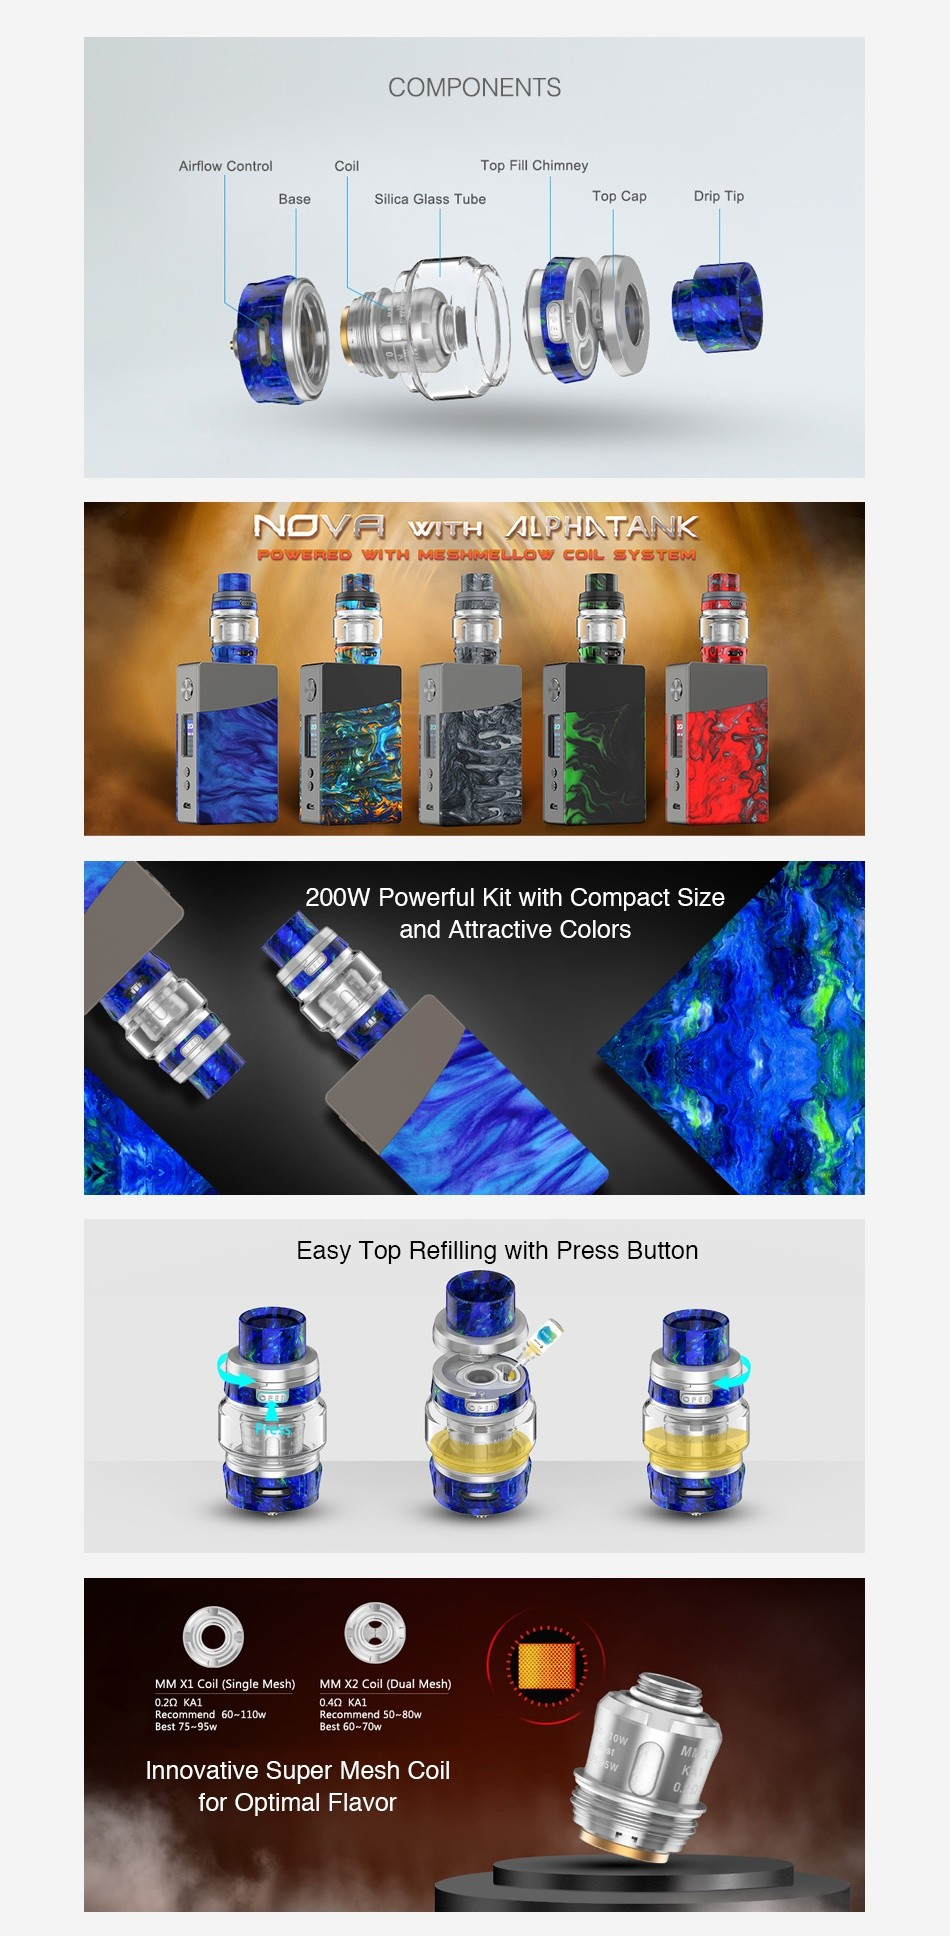 Geekvape NOVA 200W TC Kit with Alpha Tank COMPONENTS Airflow Control Top Fill Chimney Base Silica Glass Tube Top Cap Drip Tip N    HLPHNTANK P w   TH MESHMELLOW COIL sYsTEM 200W Powerful Kit with Compact size and attractive Colors Easy Top Refilling with Press Button MM Xl Coil  Single Mesh  MM X2 Coil  Dual Mesh  110w Best 75 95w Innovative Super Mesh coil for optimal flavor